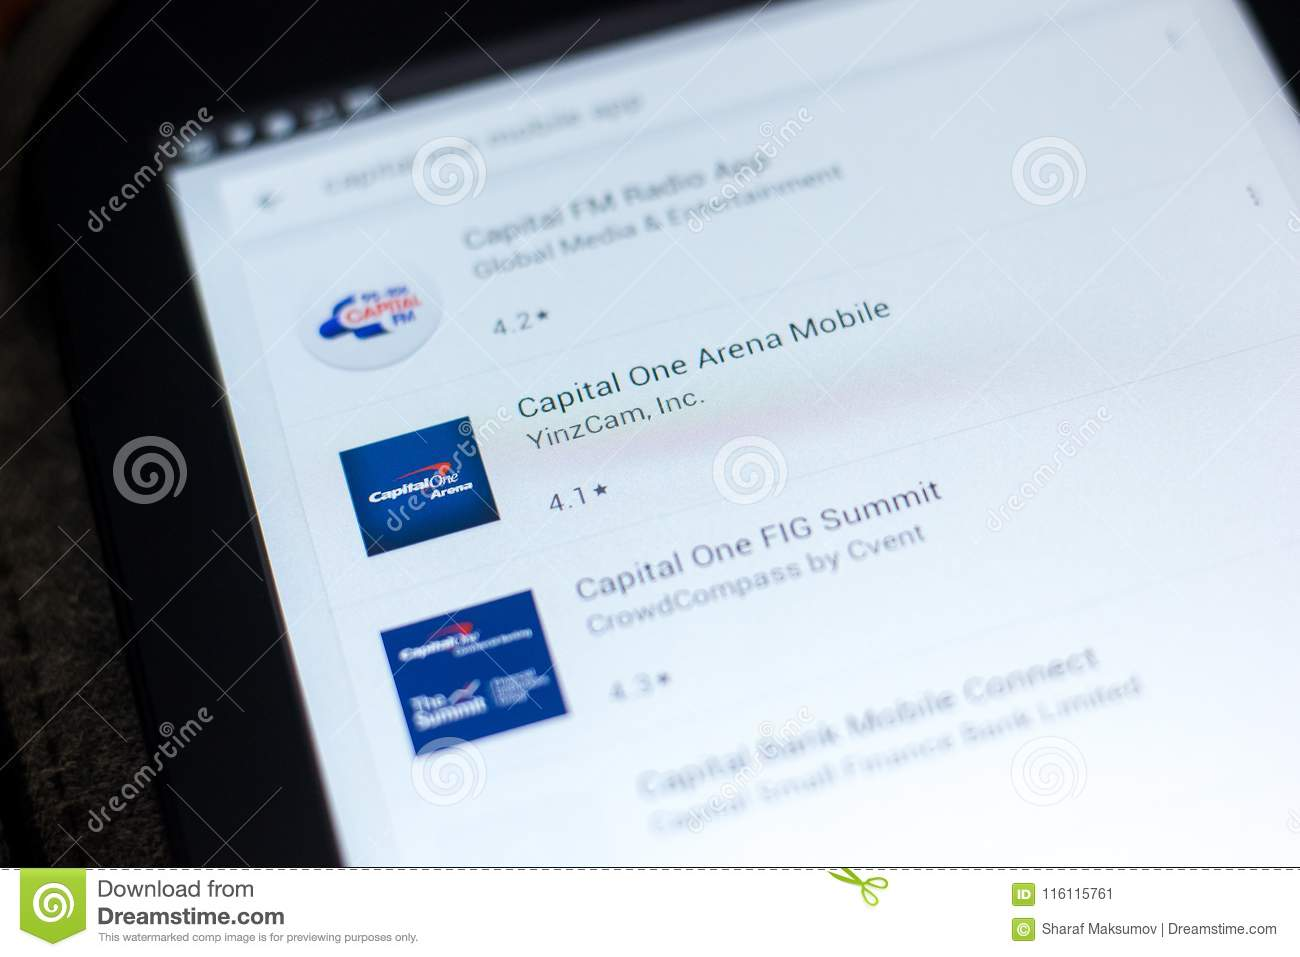 capital one mobile app download